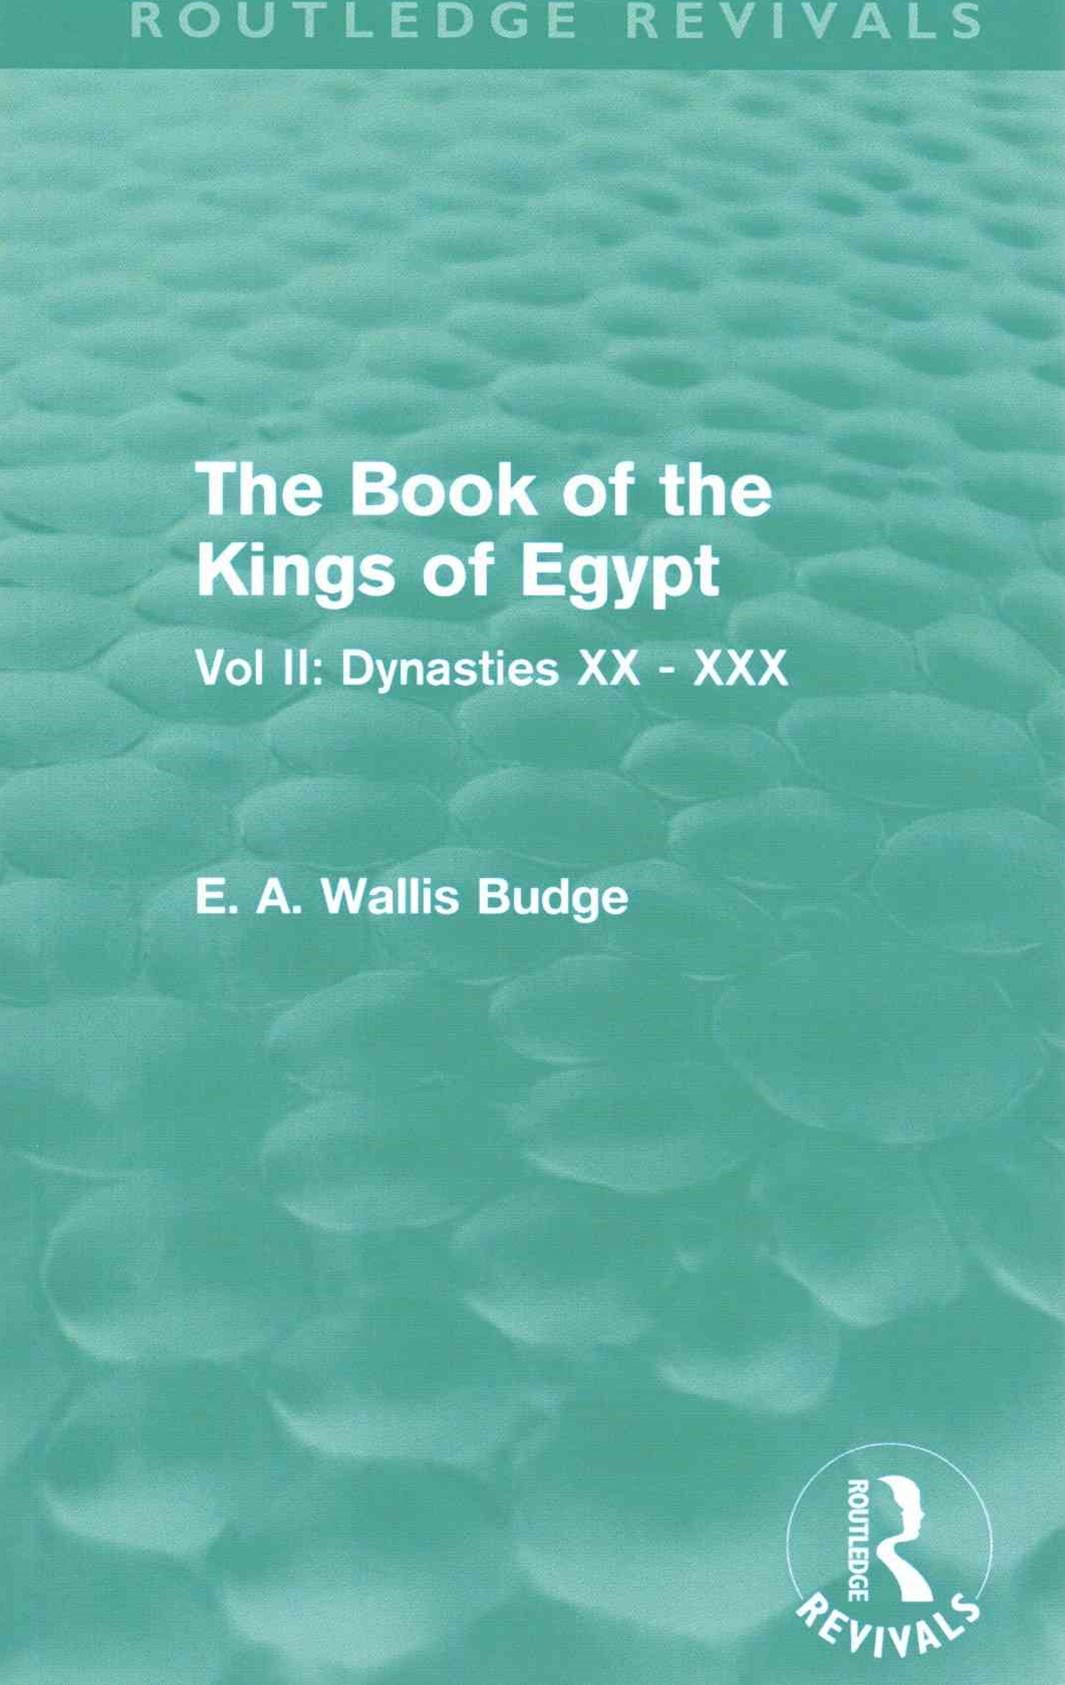 The Book of the Kings of Egypt (Routledge Revivals)